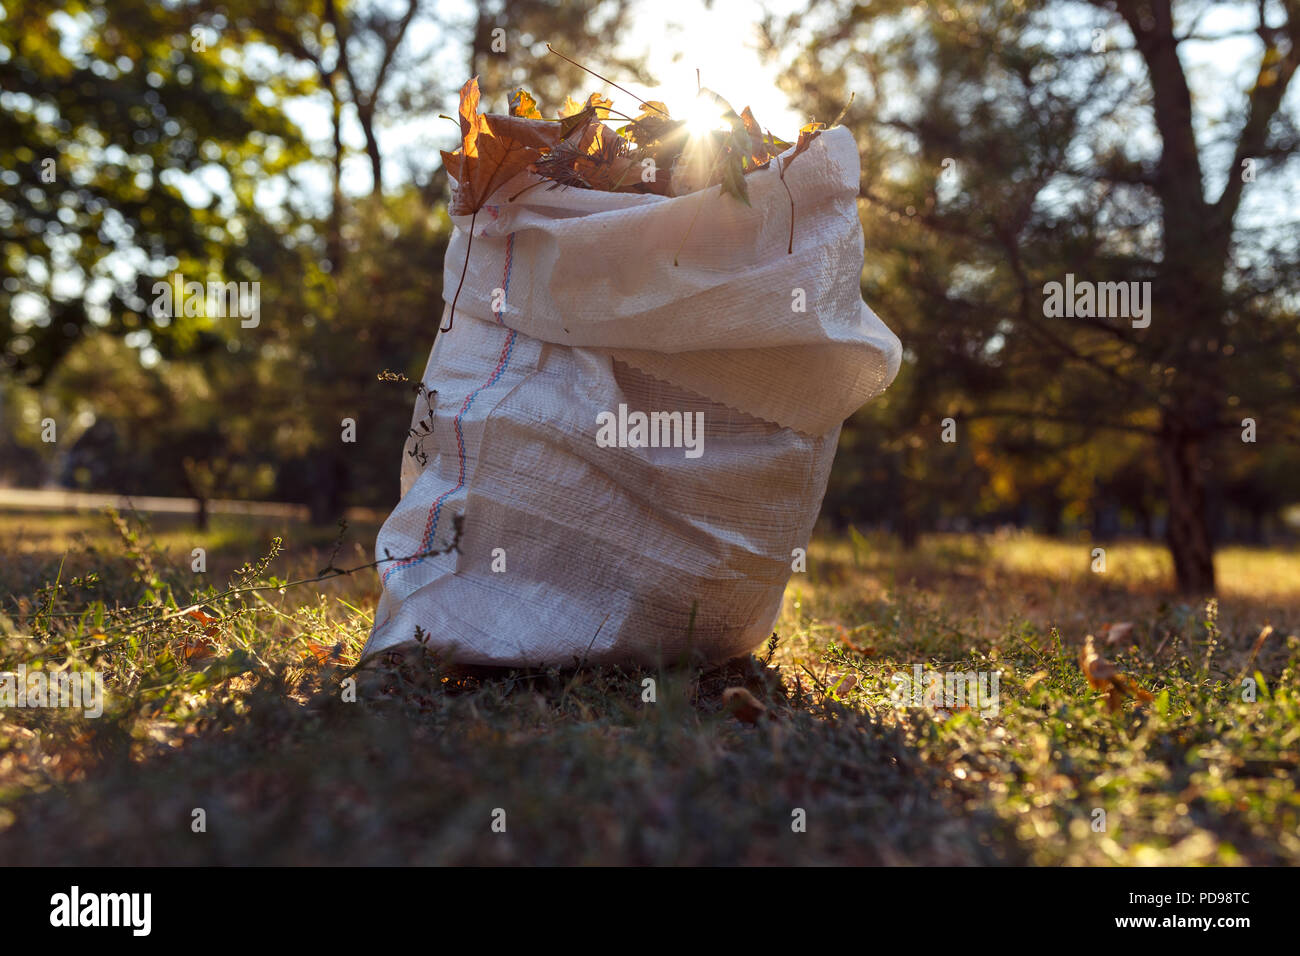 young boy collects fallen leaves in autumn otdoor - Stock Image